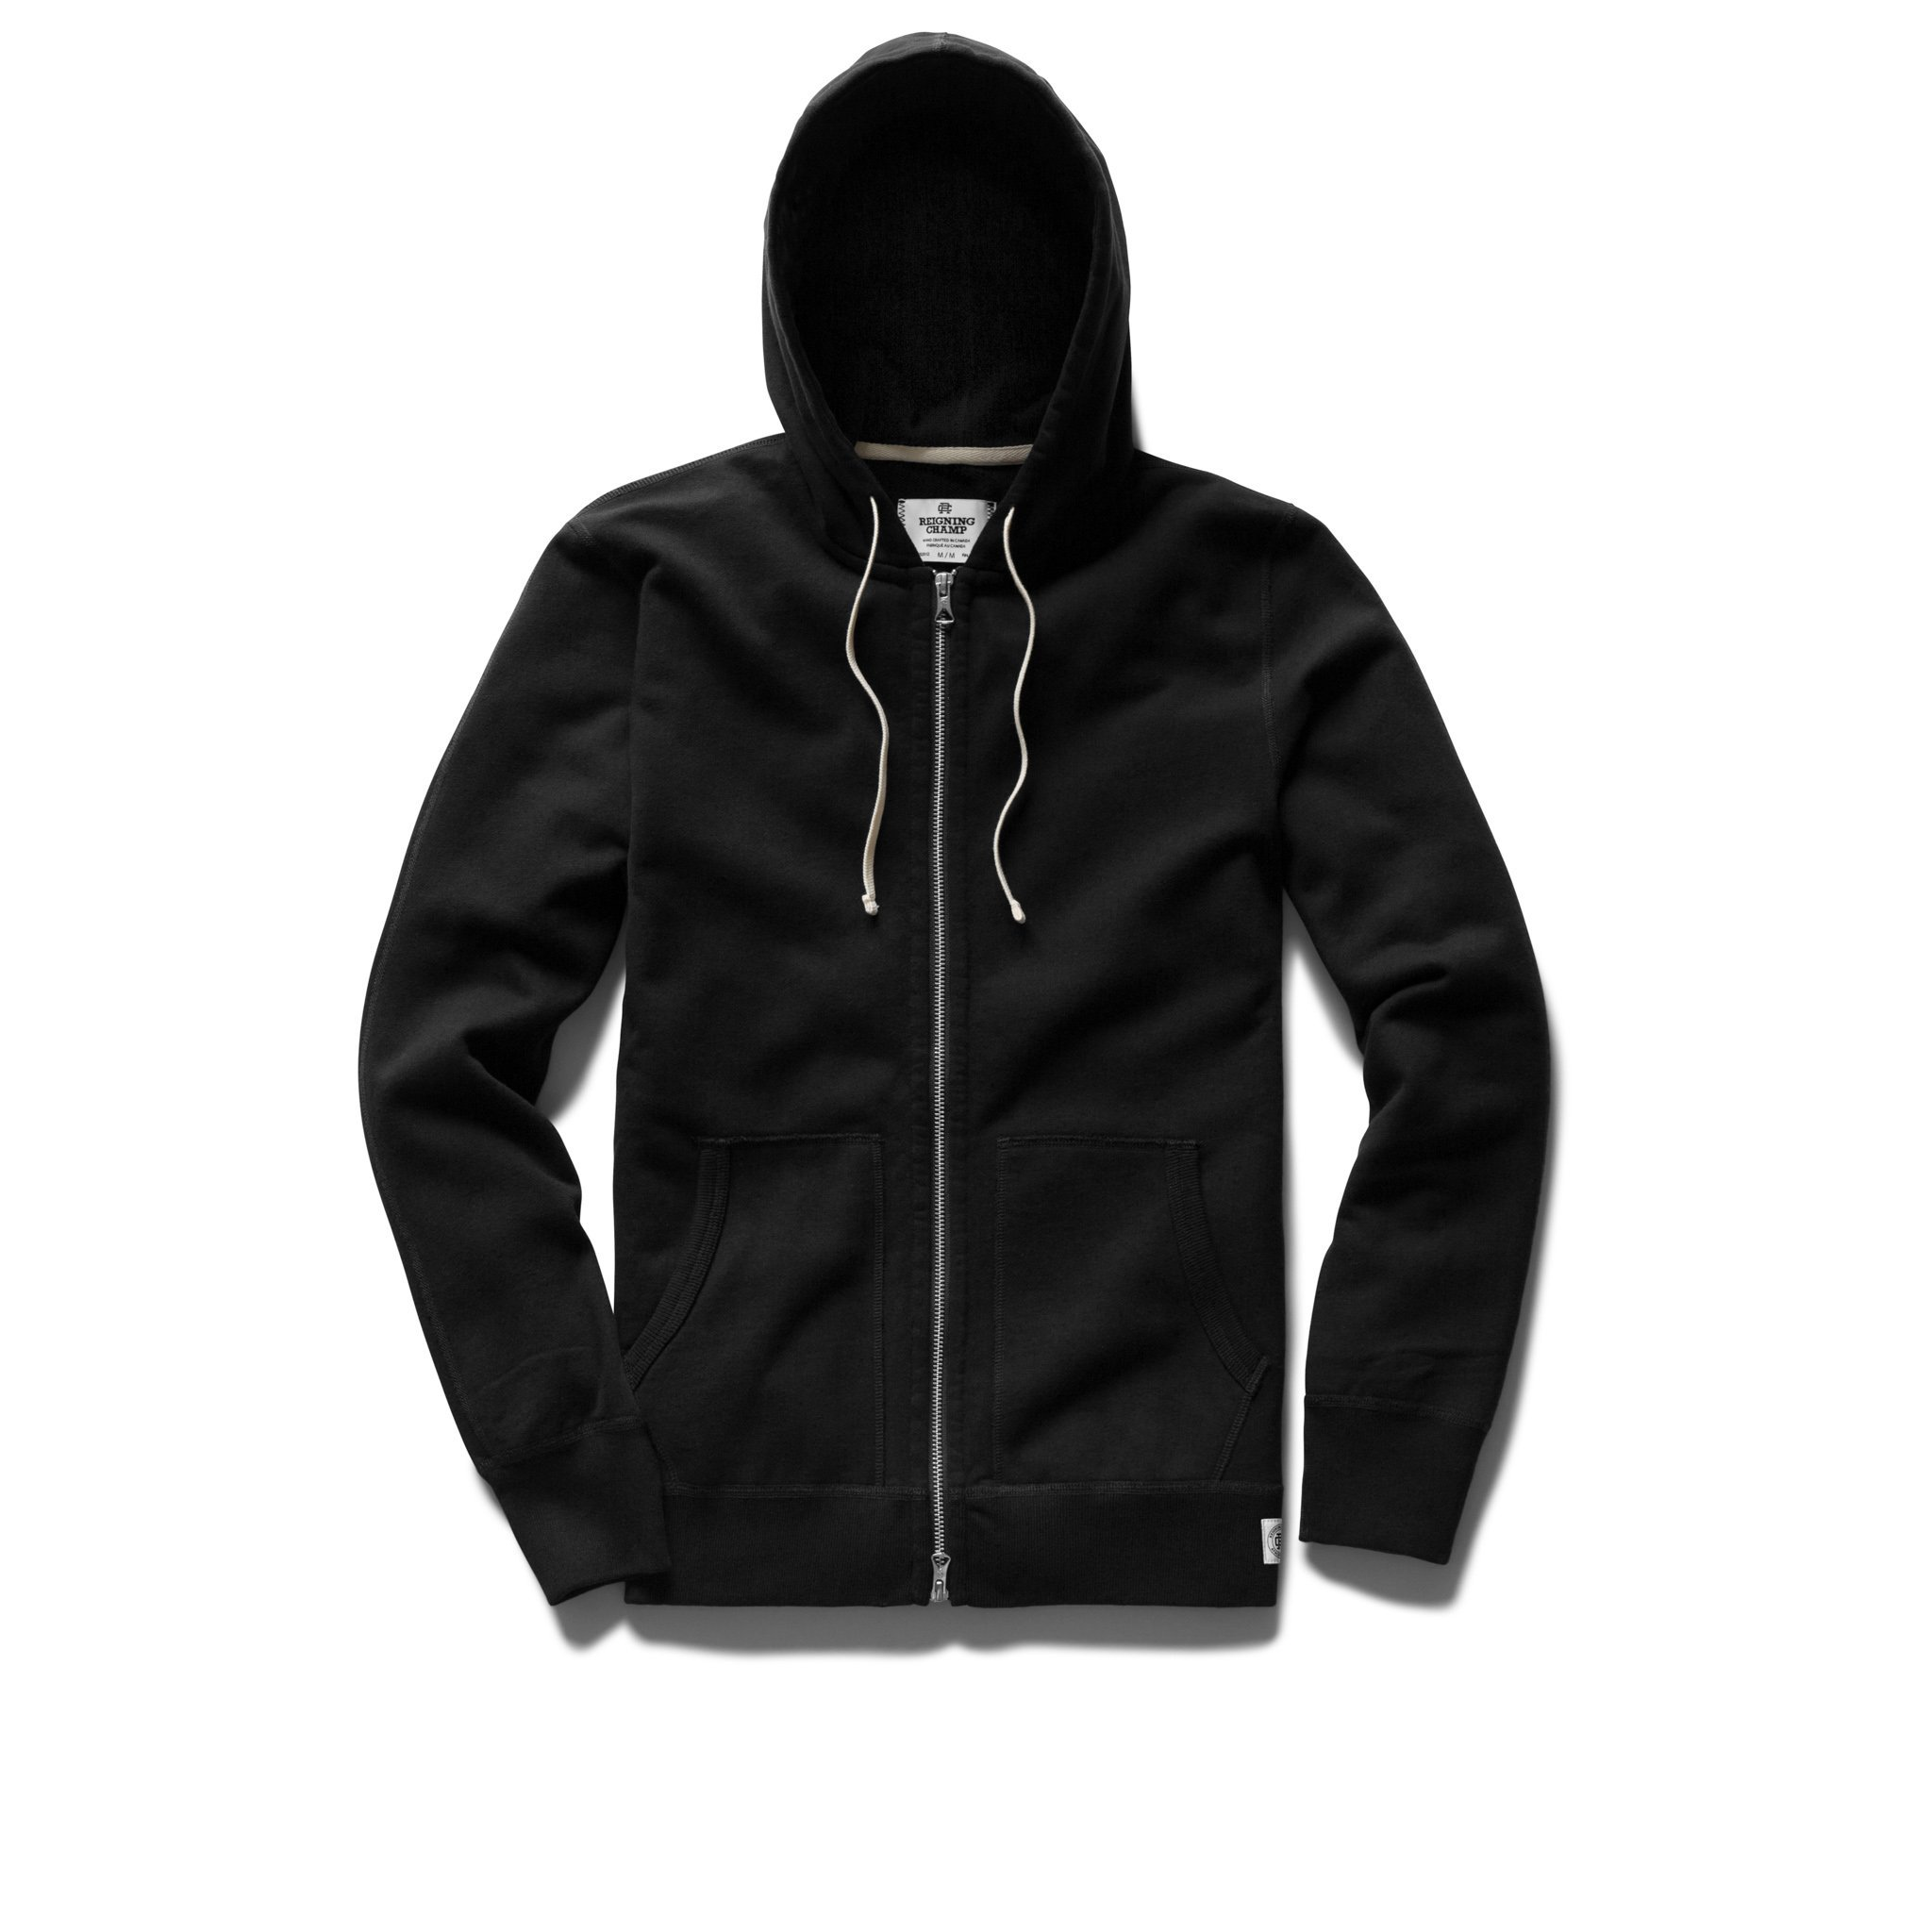 Mens Full-Zip Hoodie Sweatshirt Nature and Landscape Sportswear Jackets with Pockets